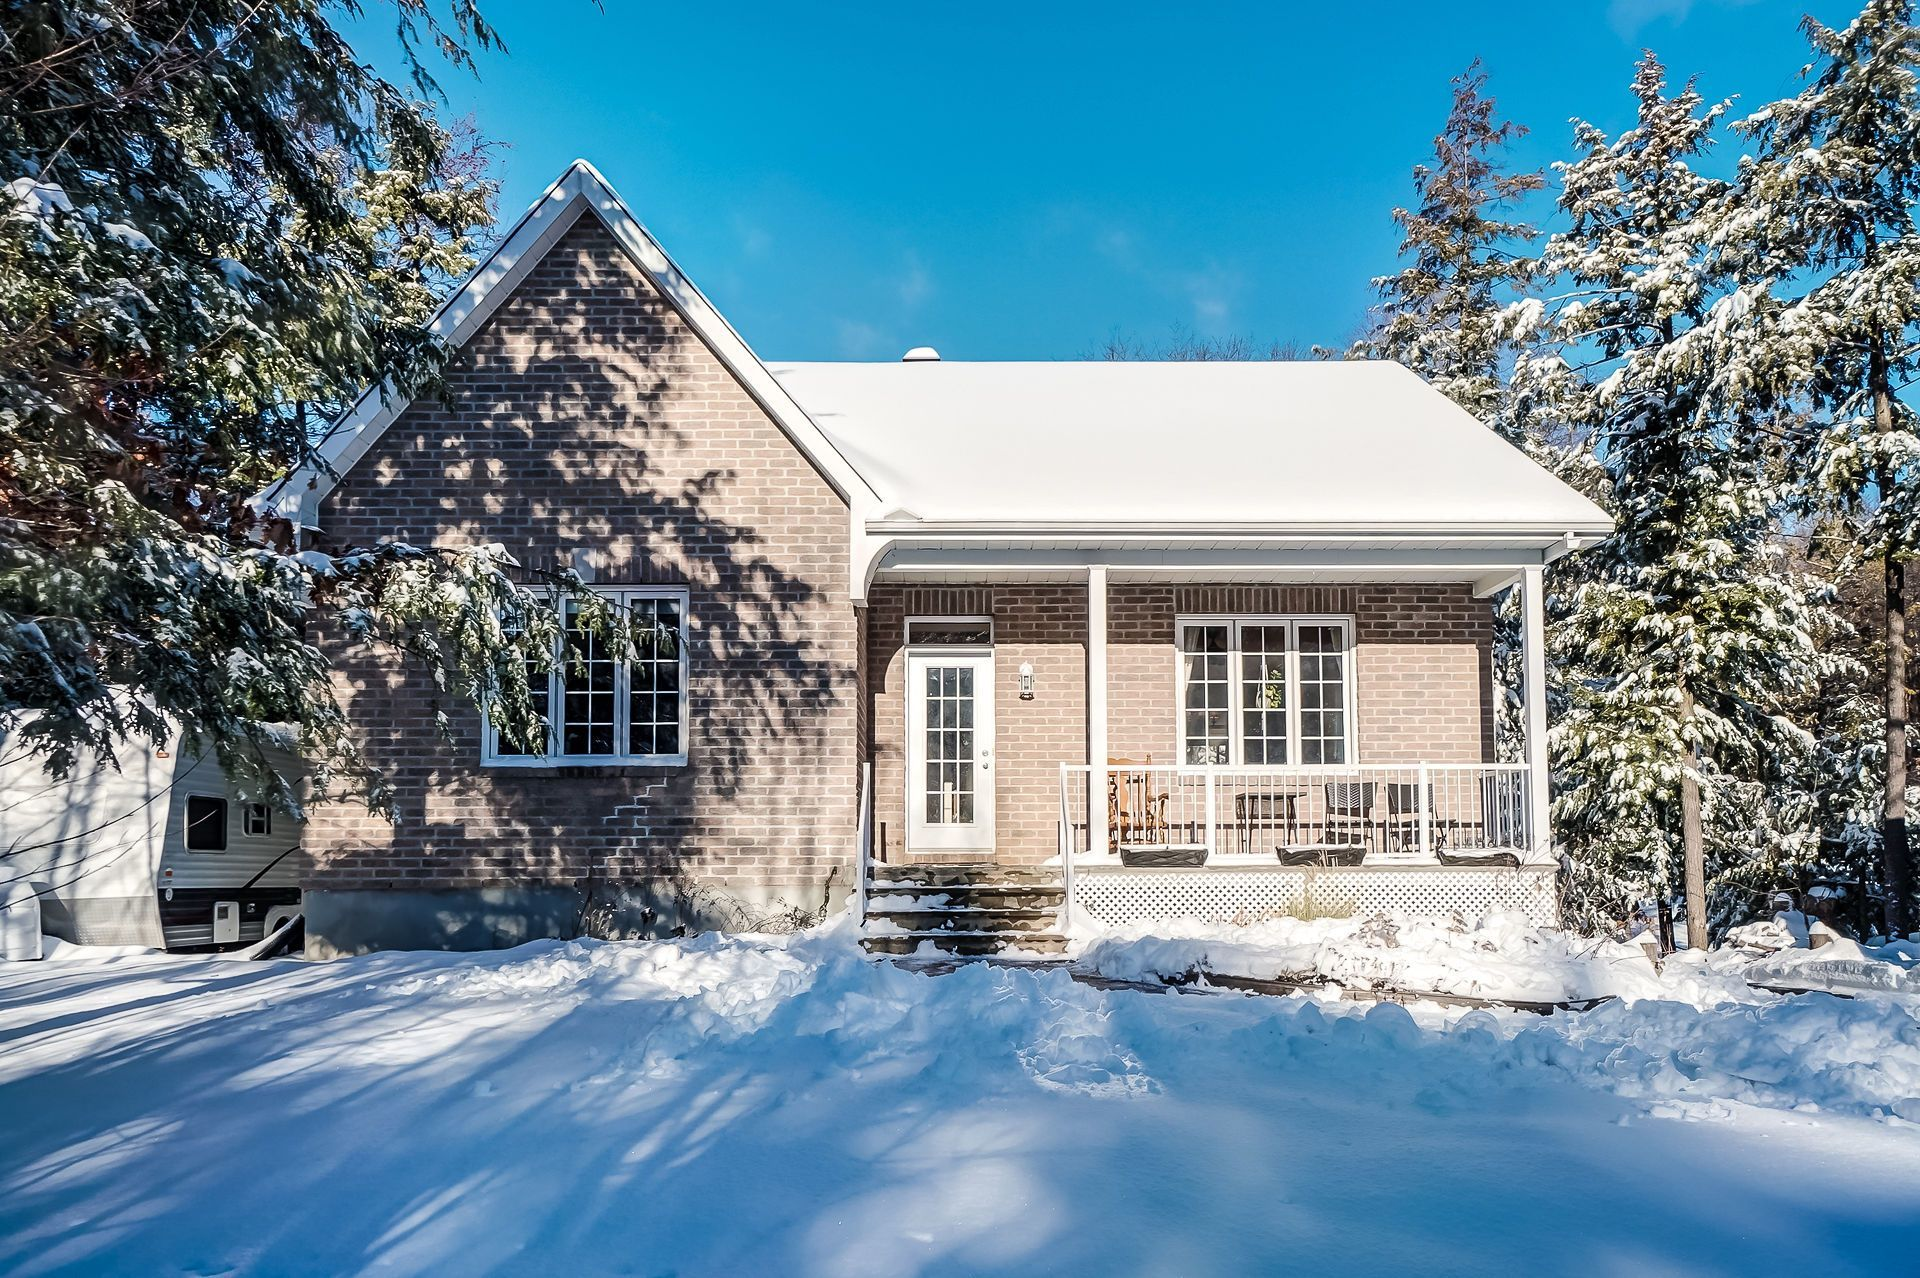 Photo of Listing #15642748